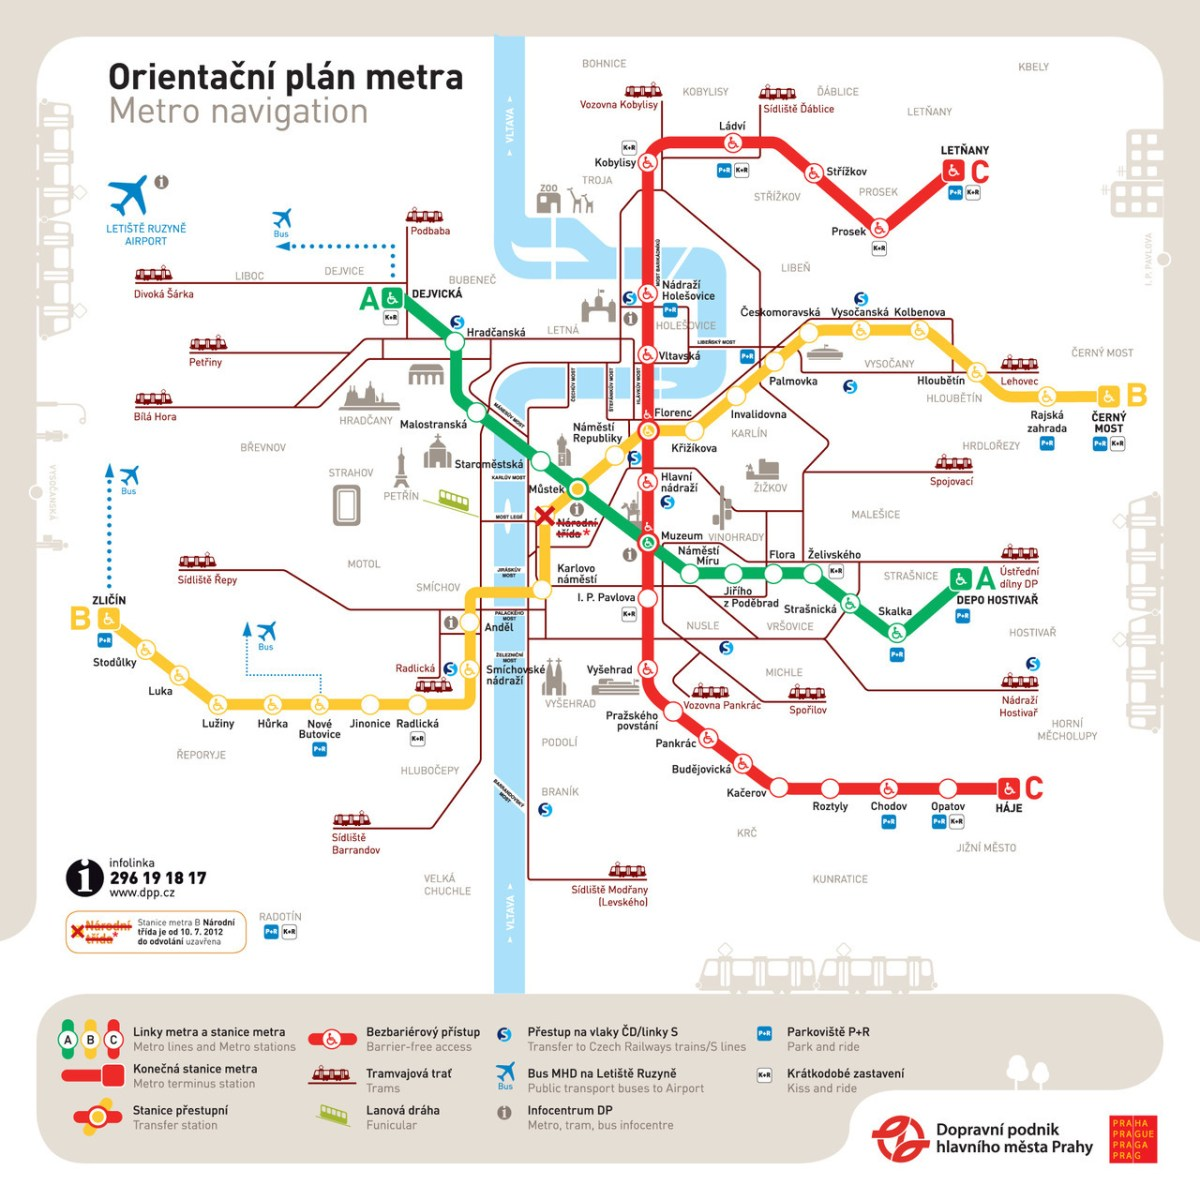 tram map in prague Transit Maps Official Map Prague Metro Orientation Map 2012 tram map in prague